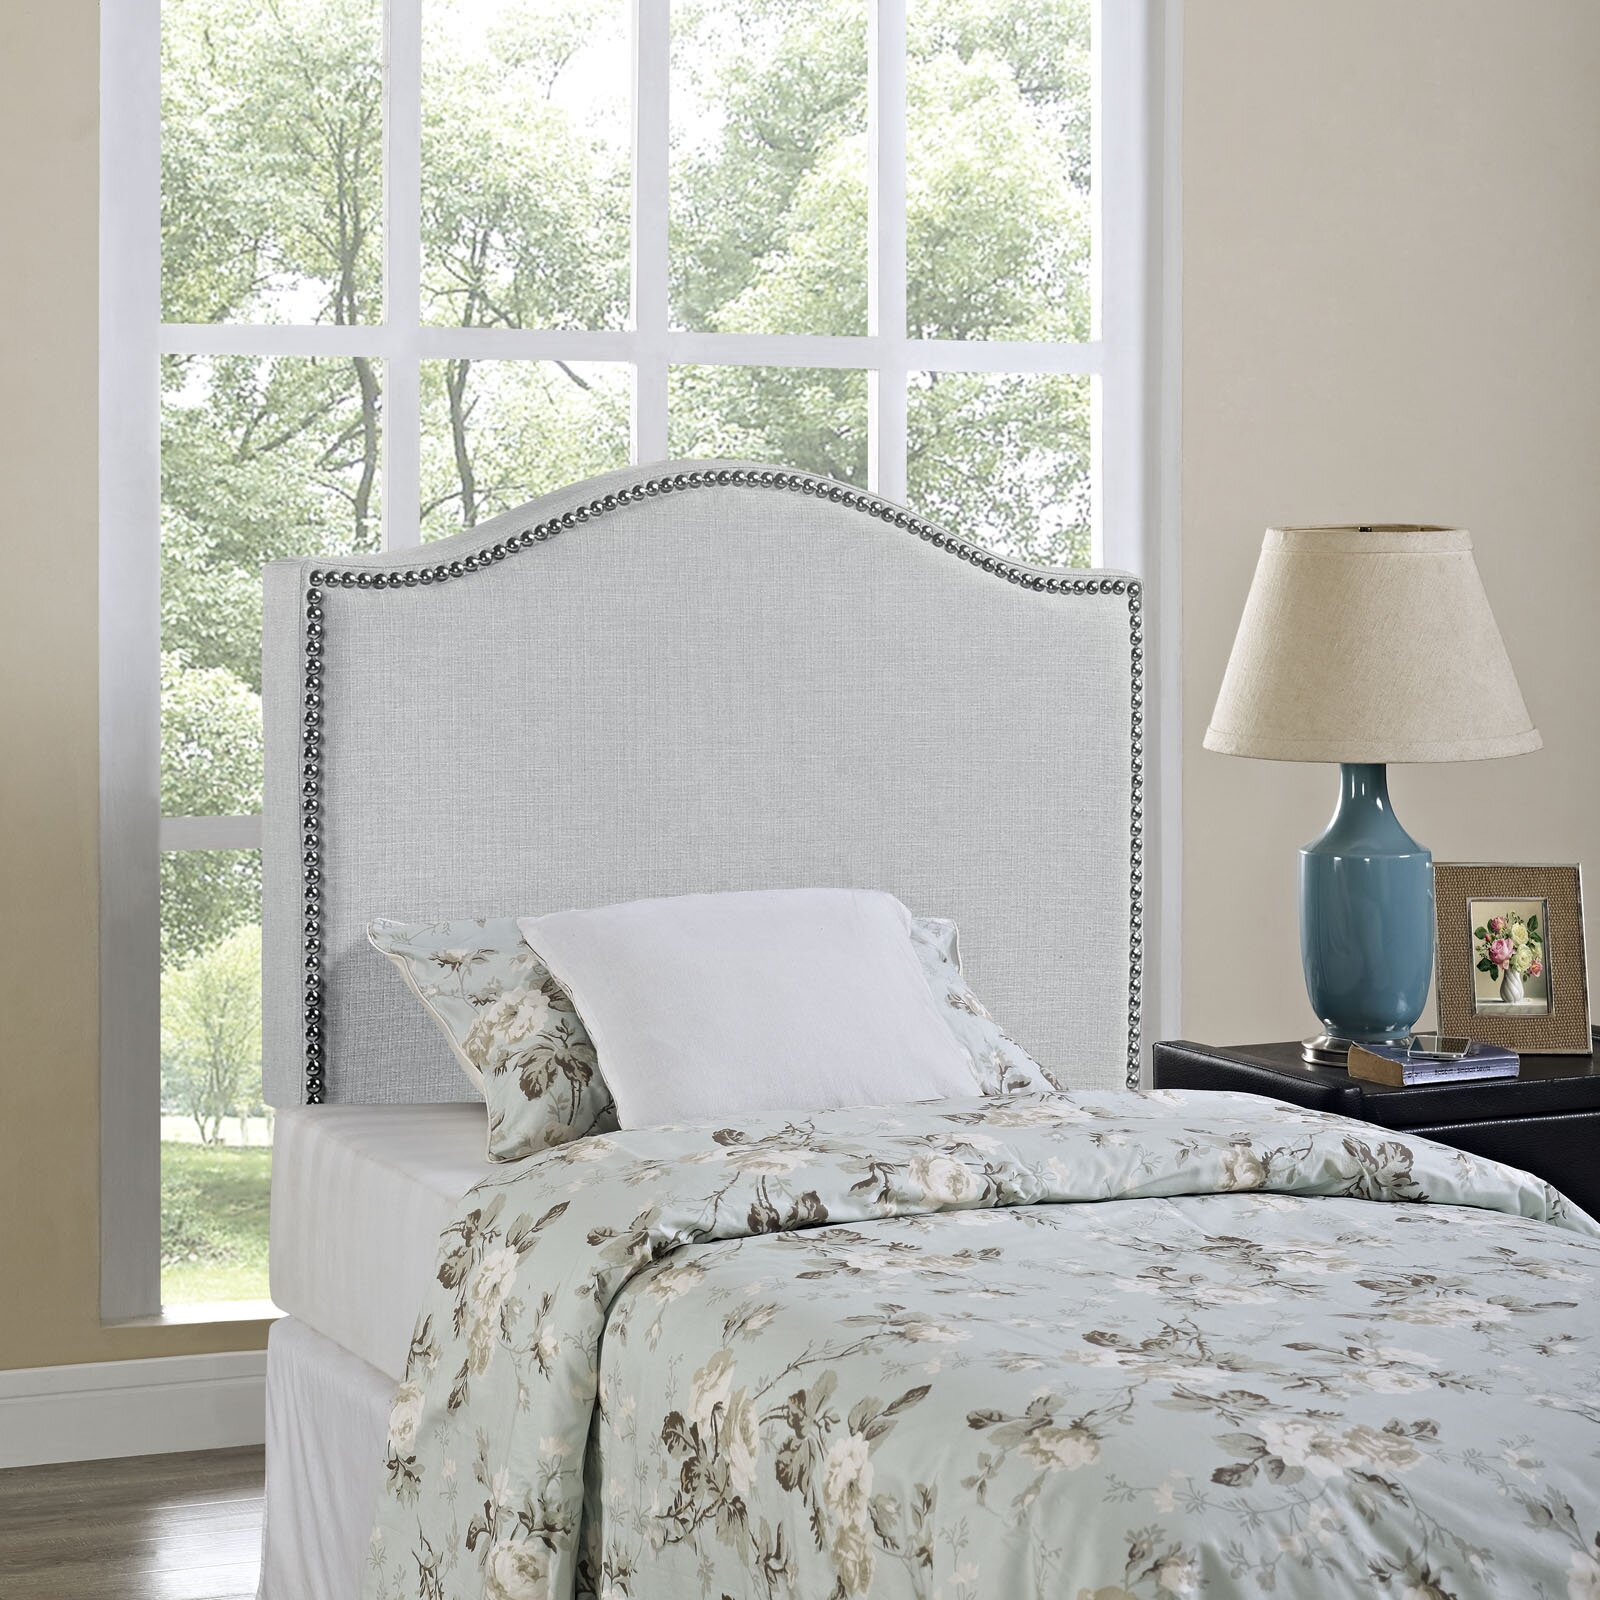 Bed frames headboards - Quick View Bransford Upholstered Panel Headboard